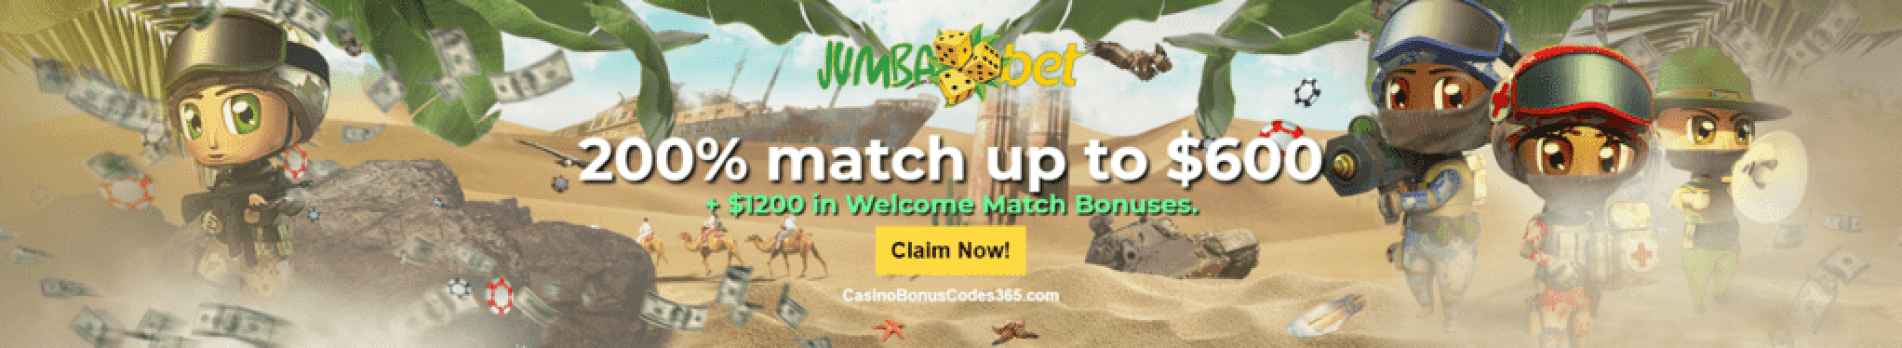 Jumba Bet 200% match up to $600  plus $1200 in Welcome Match Bonuses.